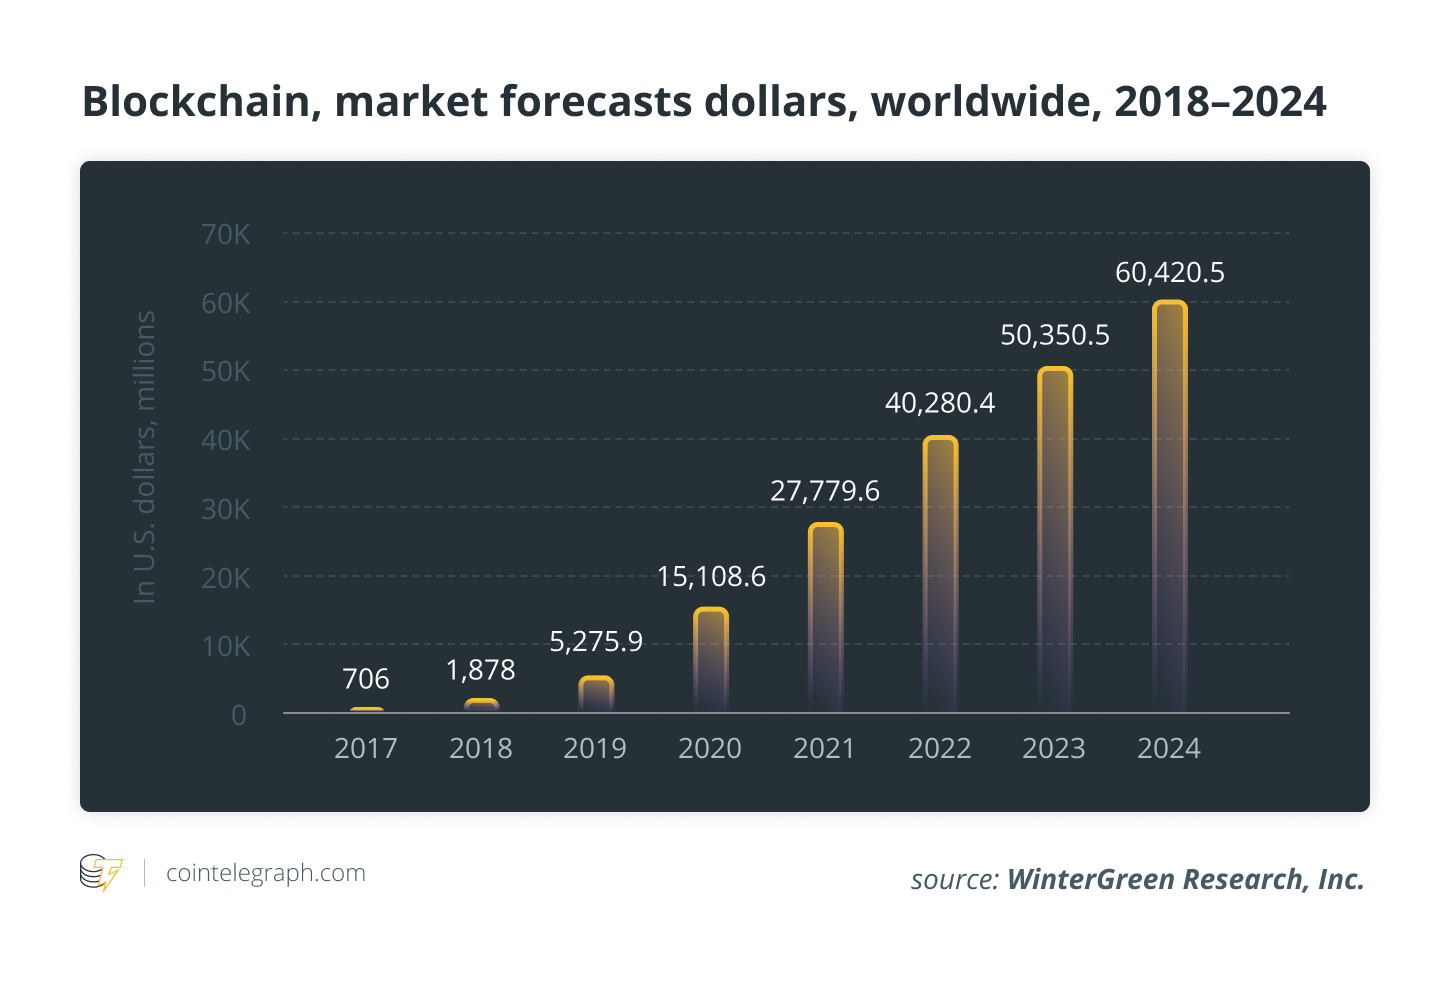 cryptocurrencies to invest in 2021 forbes